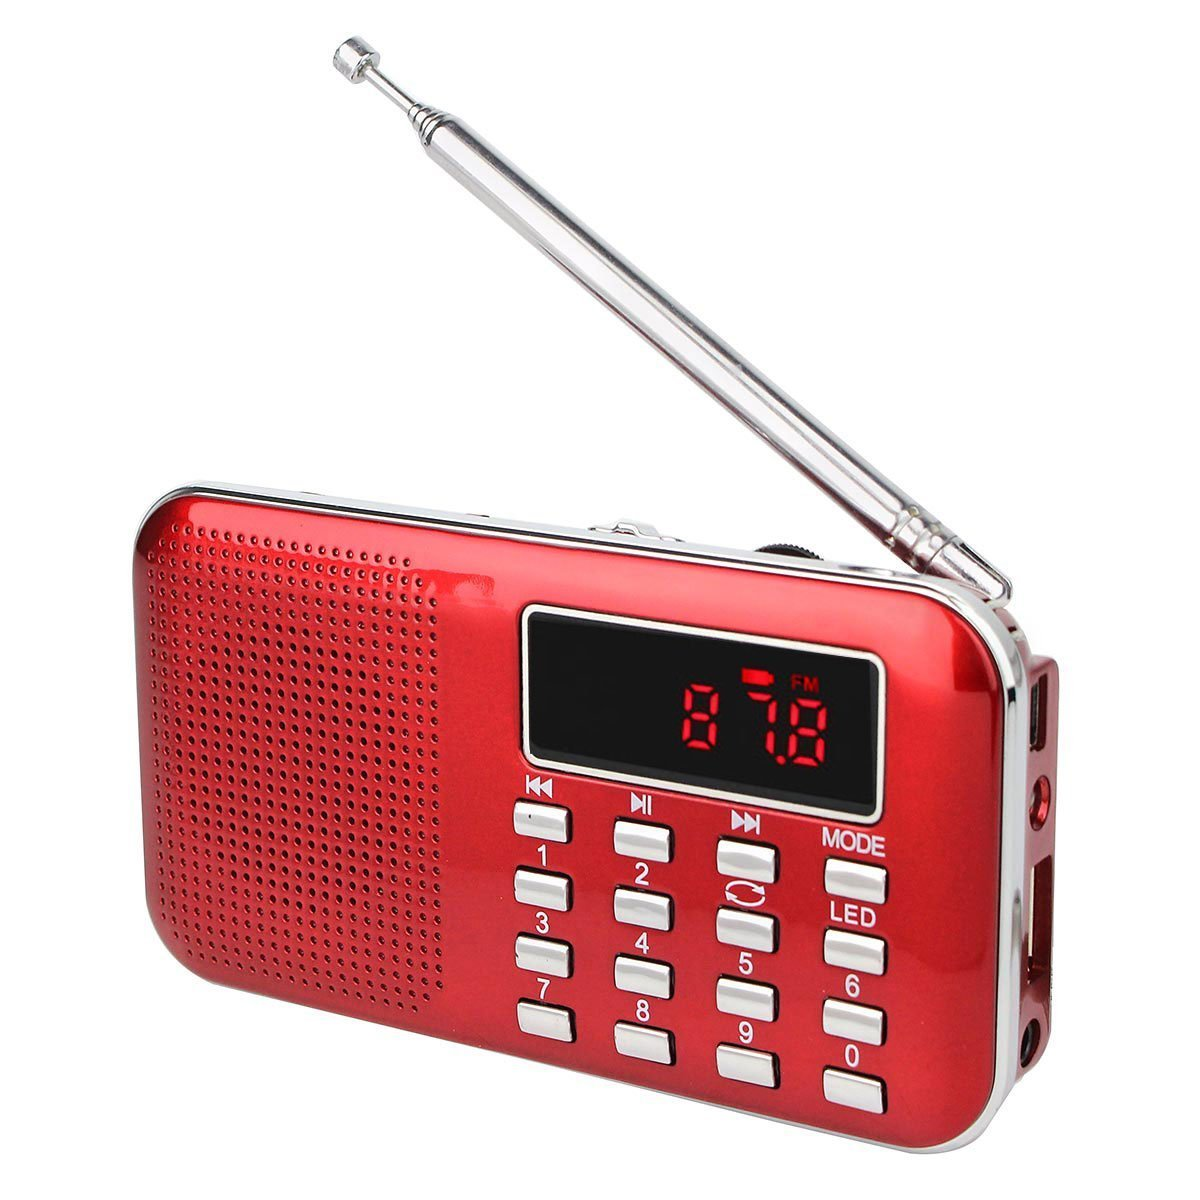 Retekess PR11 Am Fm Radio Portable Rechargeable Transistor Radios Small with Headphone Jack Mp3 Music Player Speaker Support Micro IF Card (Gold) TIVDIO L-218